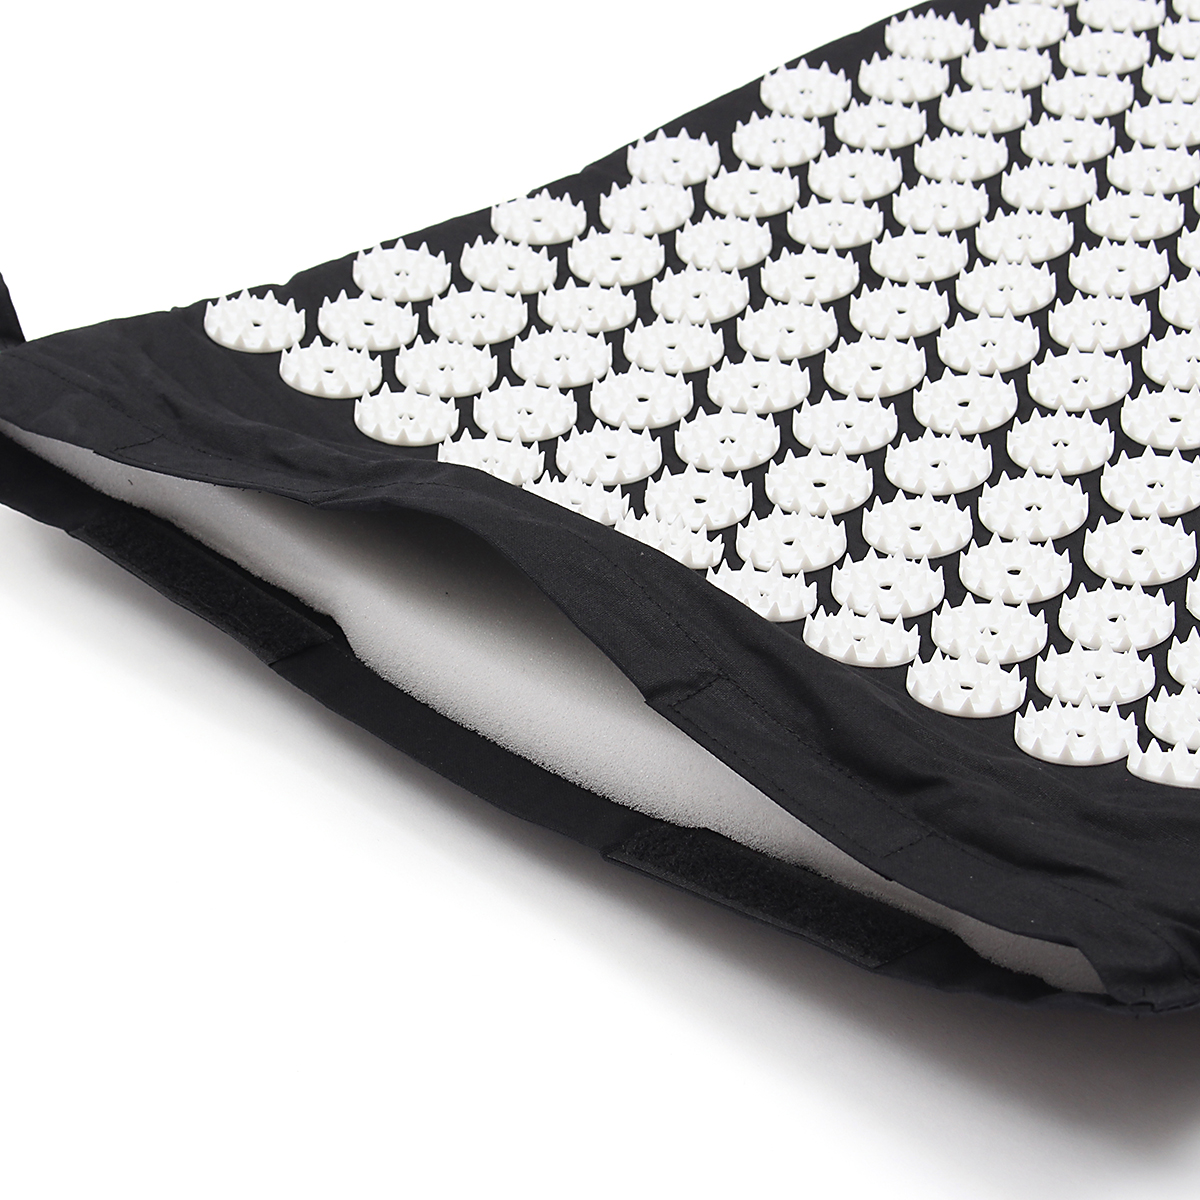 Acupressure Massager Cushion Mat And Pillow Trigger Massage Pain Stress Tension Relief Yoga